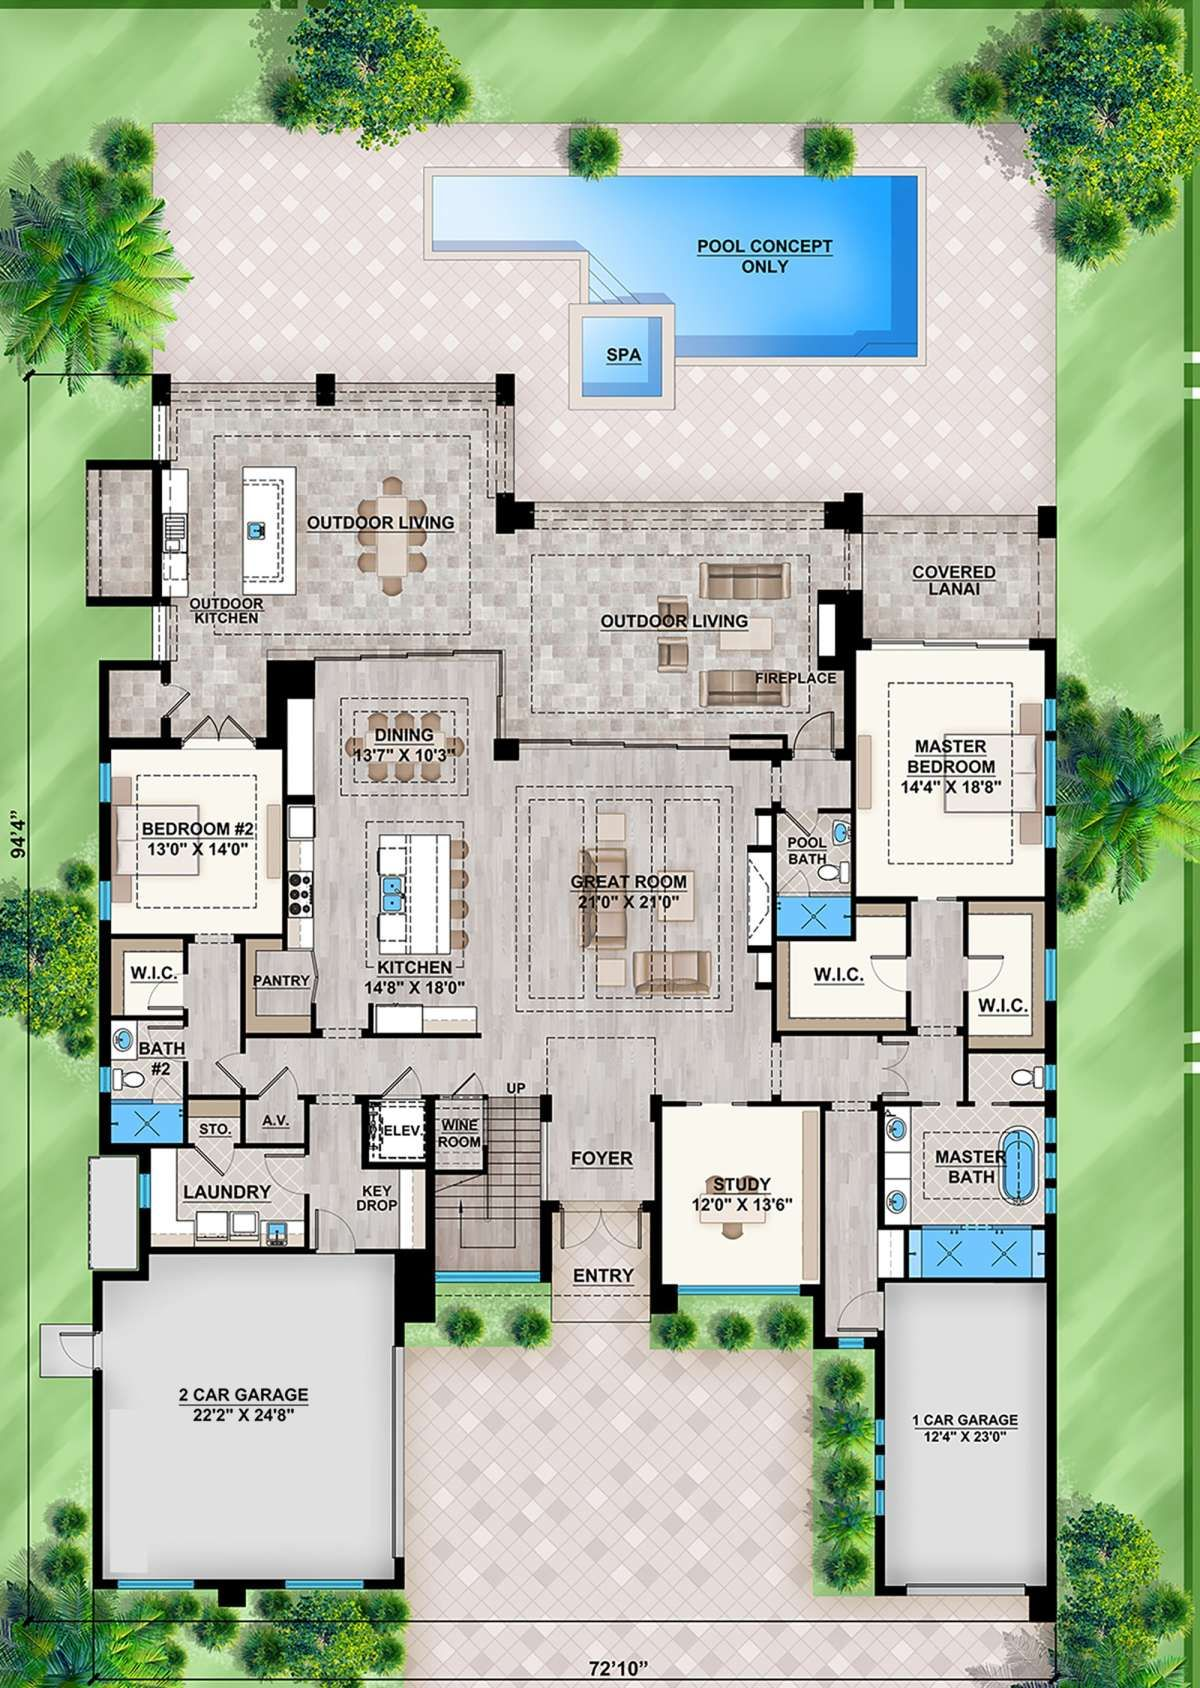 House Plan 207 00075 Contemporary Plan 4 232 Square Feet 4 Bedrooms 5 Bathrooms In 2020 Pool House Plans Courtyard House Plans Dream House Plans